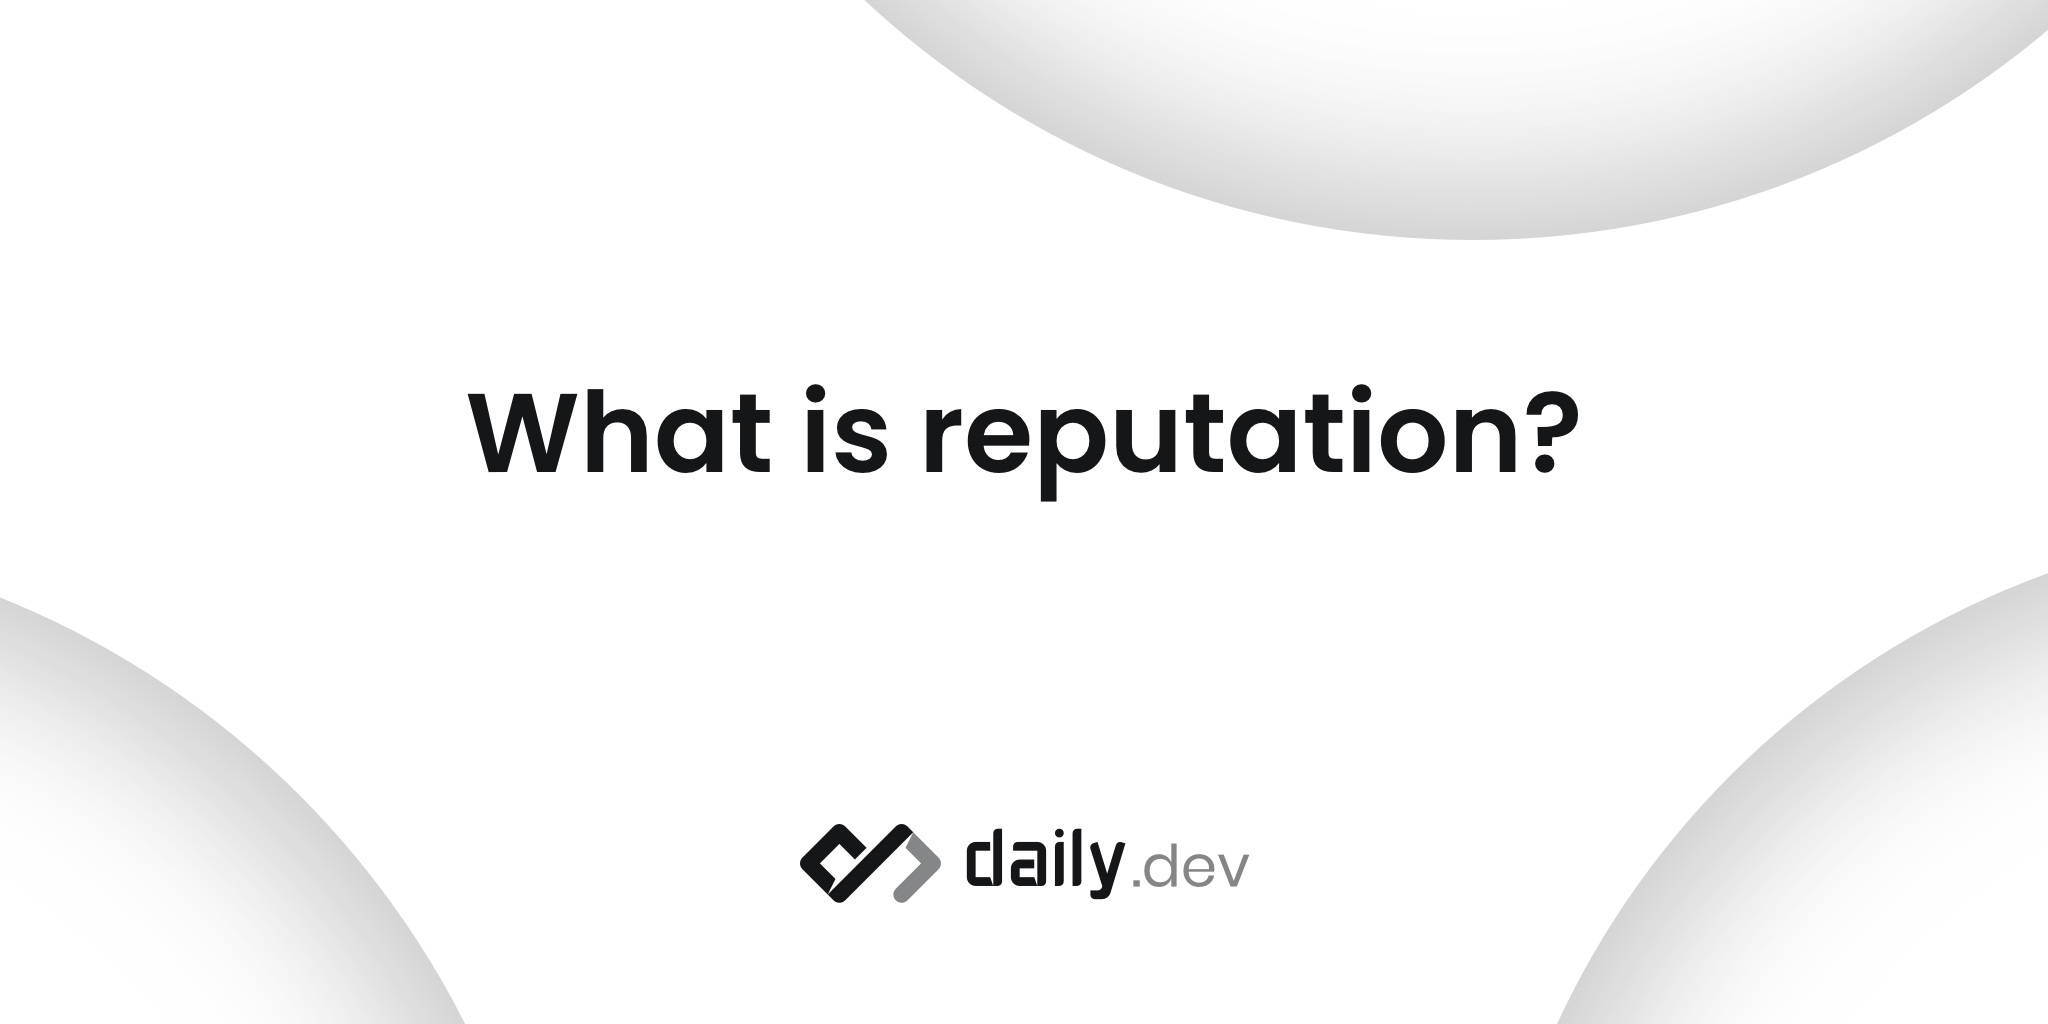 What is reputation? How do I earn it?